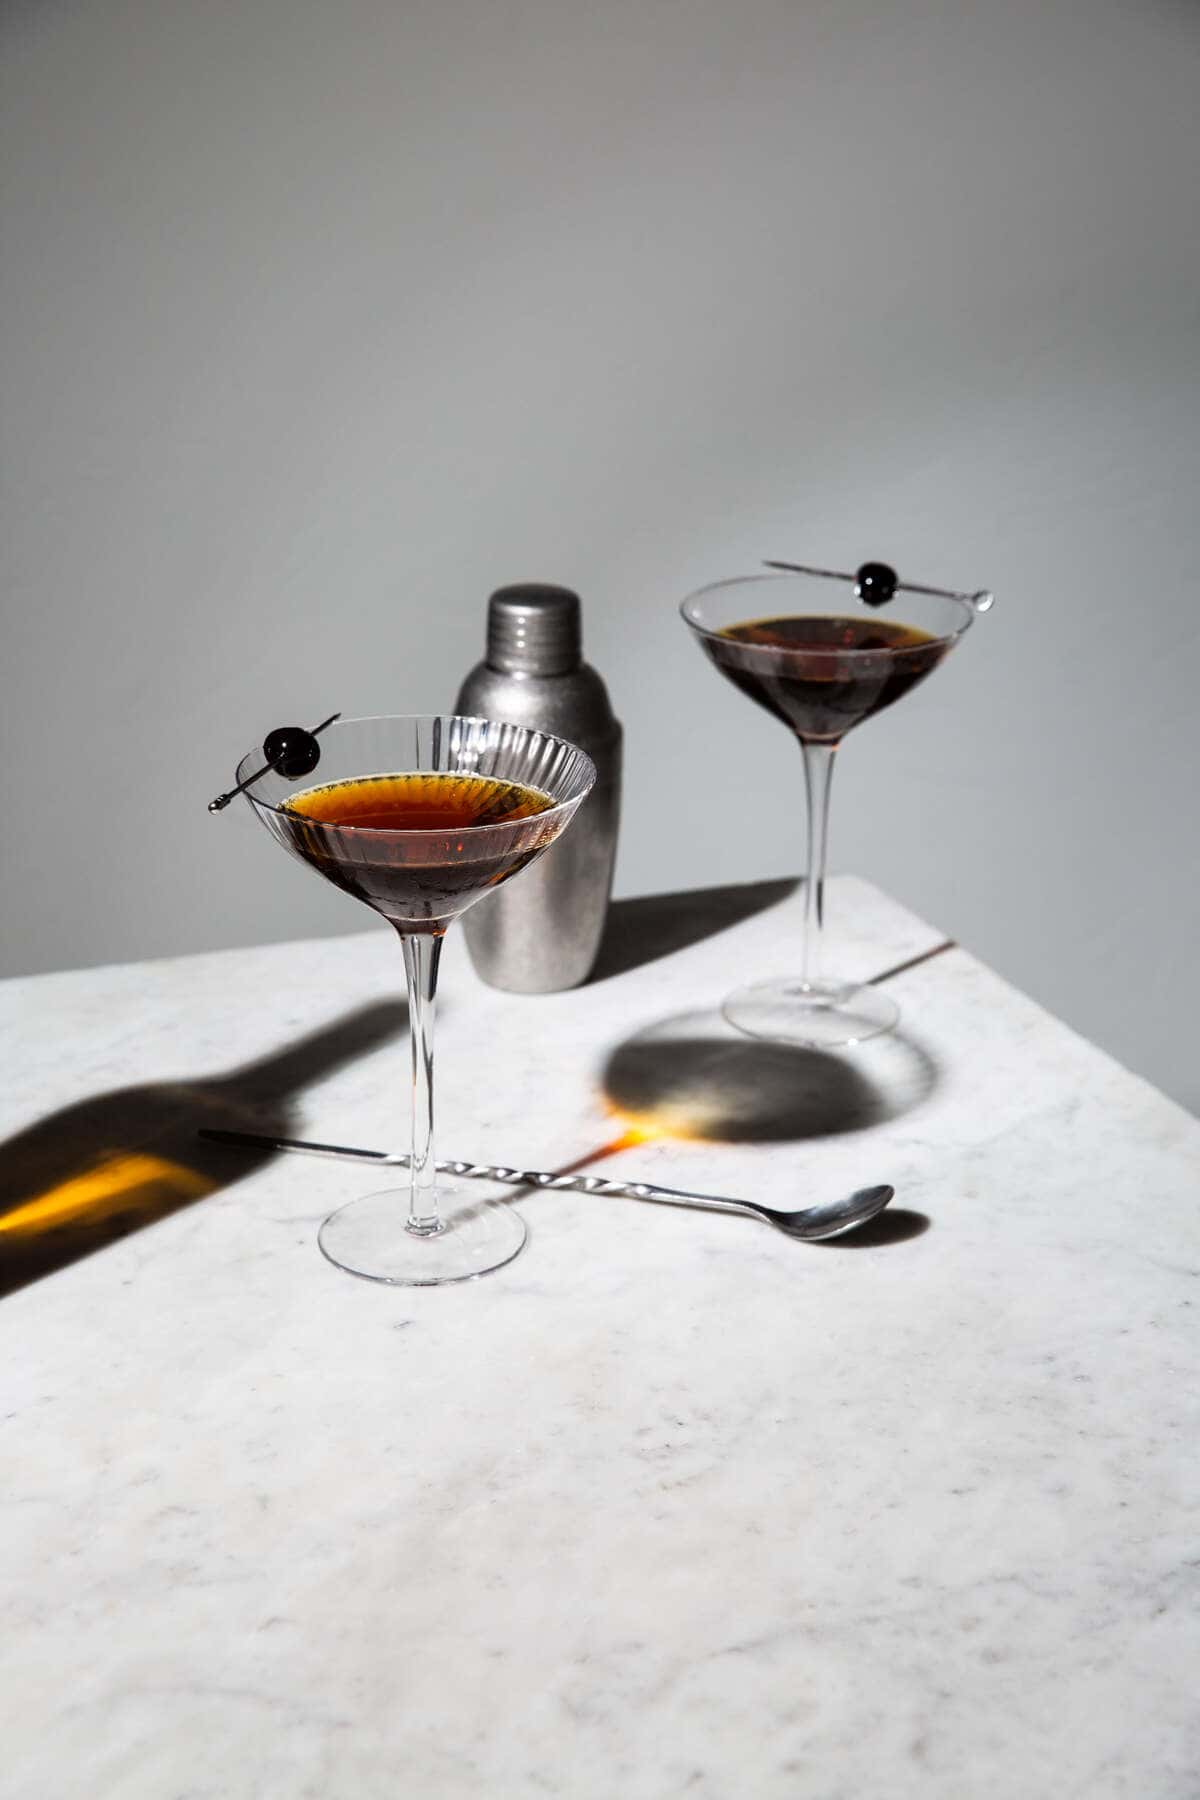 rob roy whisky cocktail in glasses set on marble